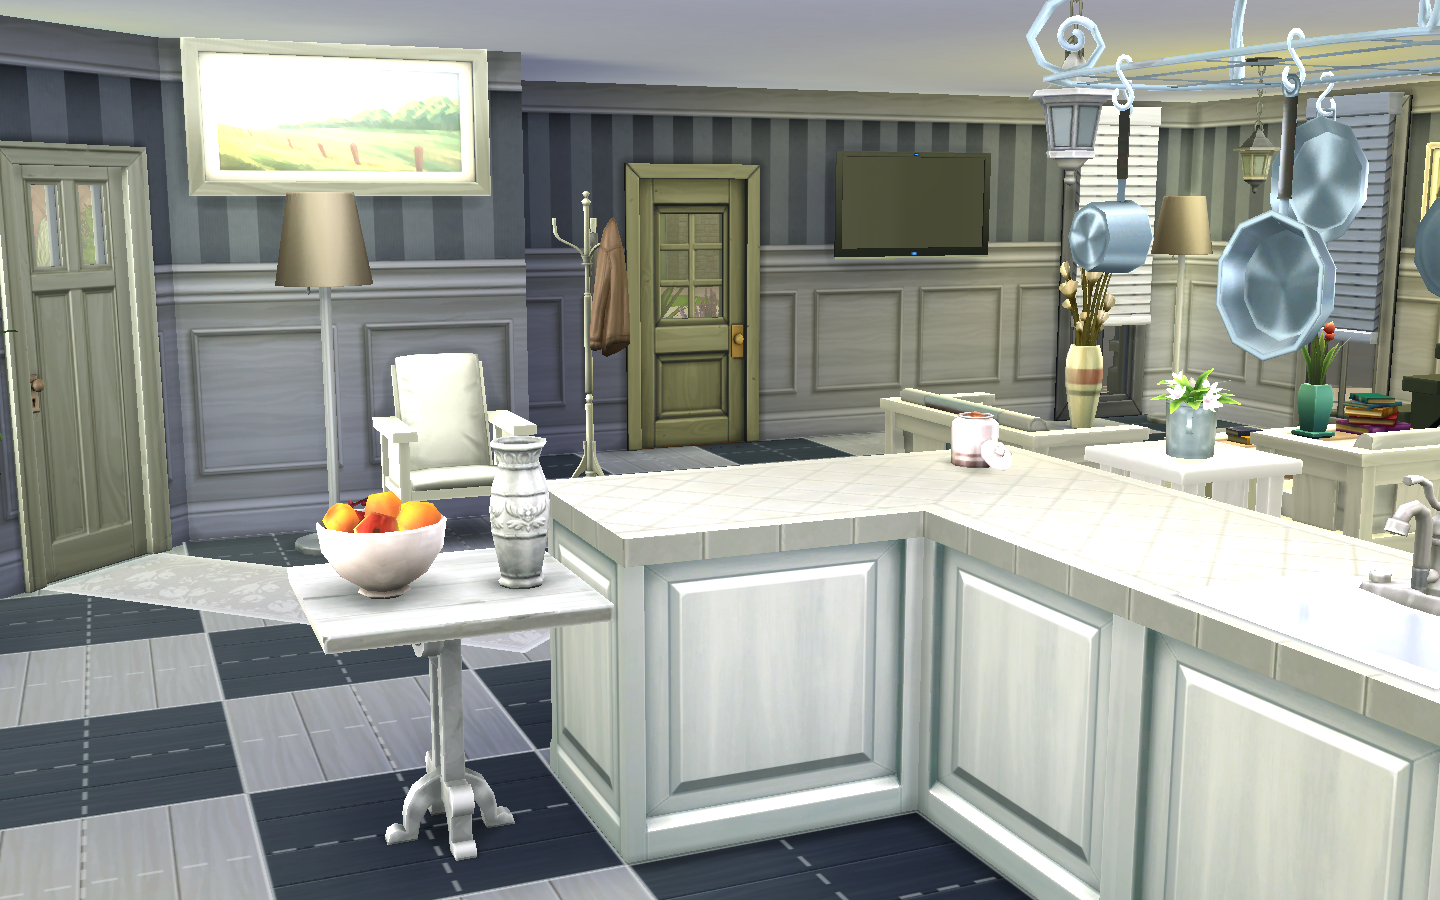 Sims 4 mods for Kitchen ideas sims 4